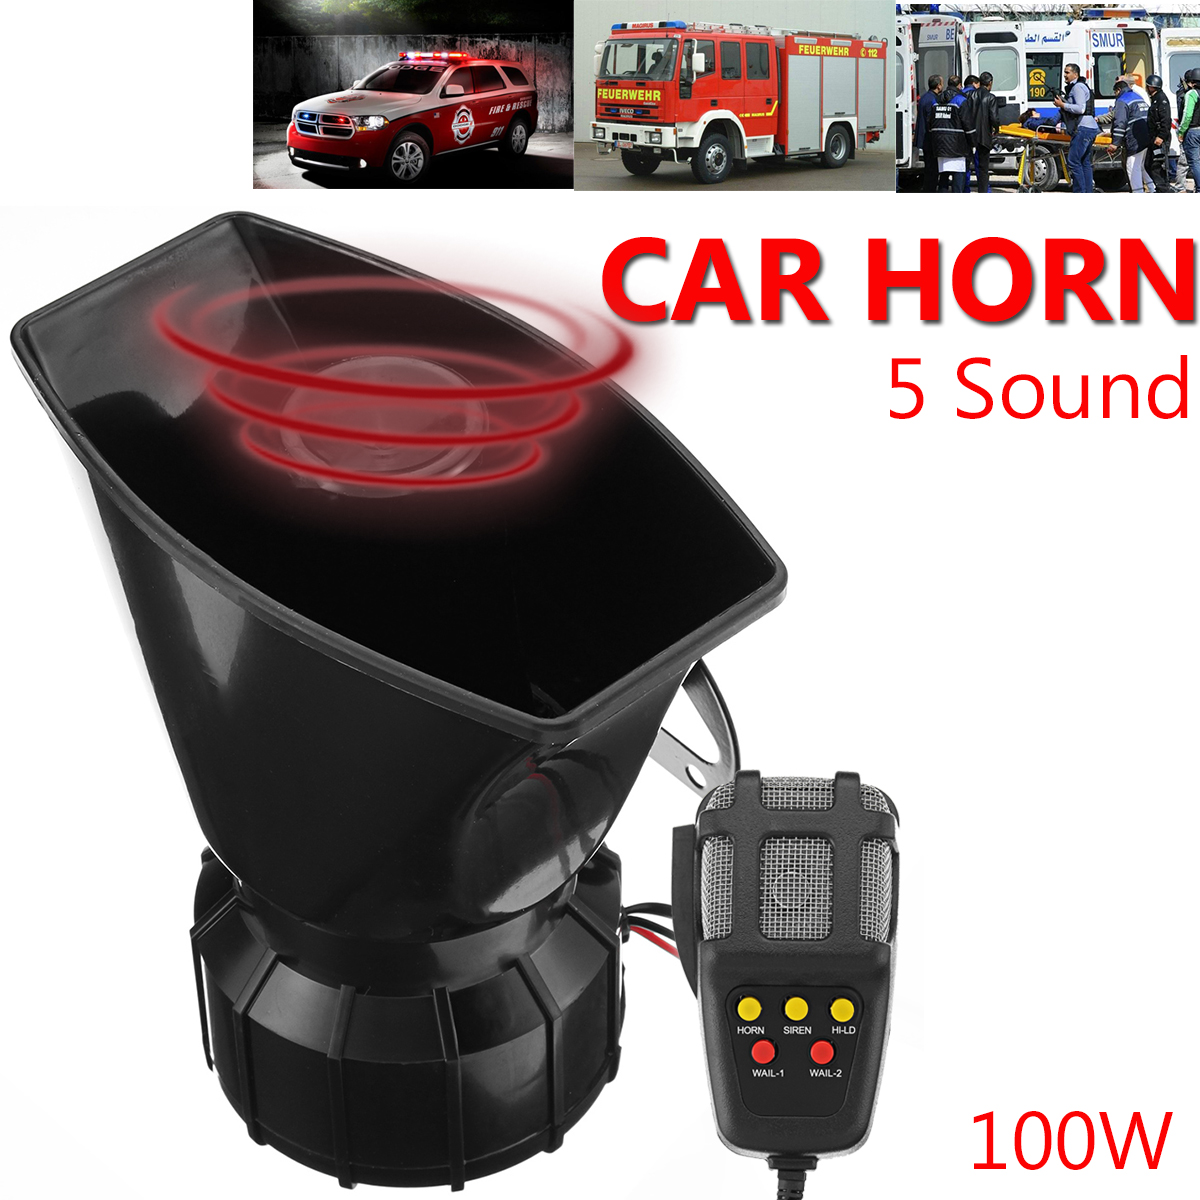 100W 12V Truck Car Warning Alarm Claxon Auto Horns 5 Sound Tones Loud Security Fire Police Siren Horn PA Loundspeaker with Mic стоимость